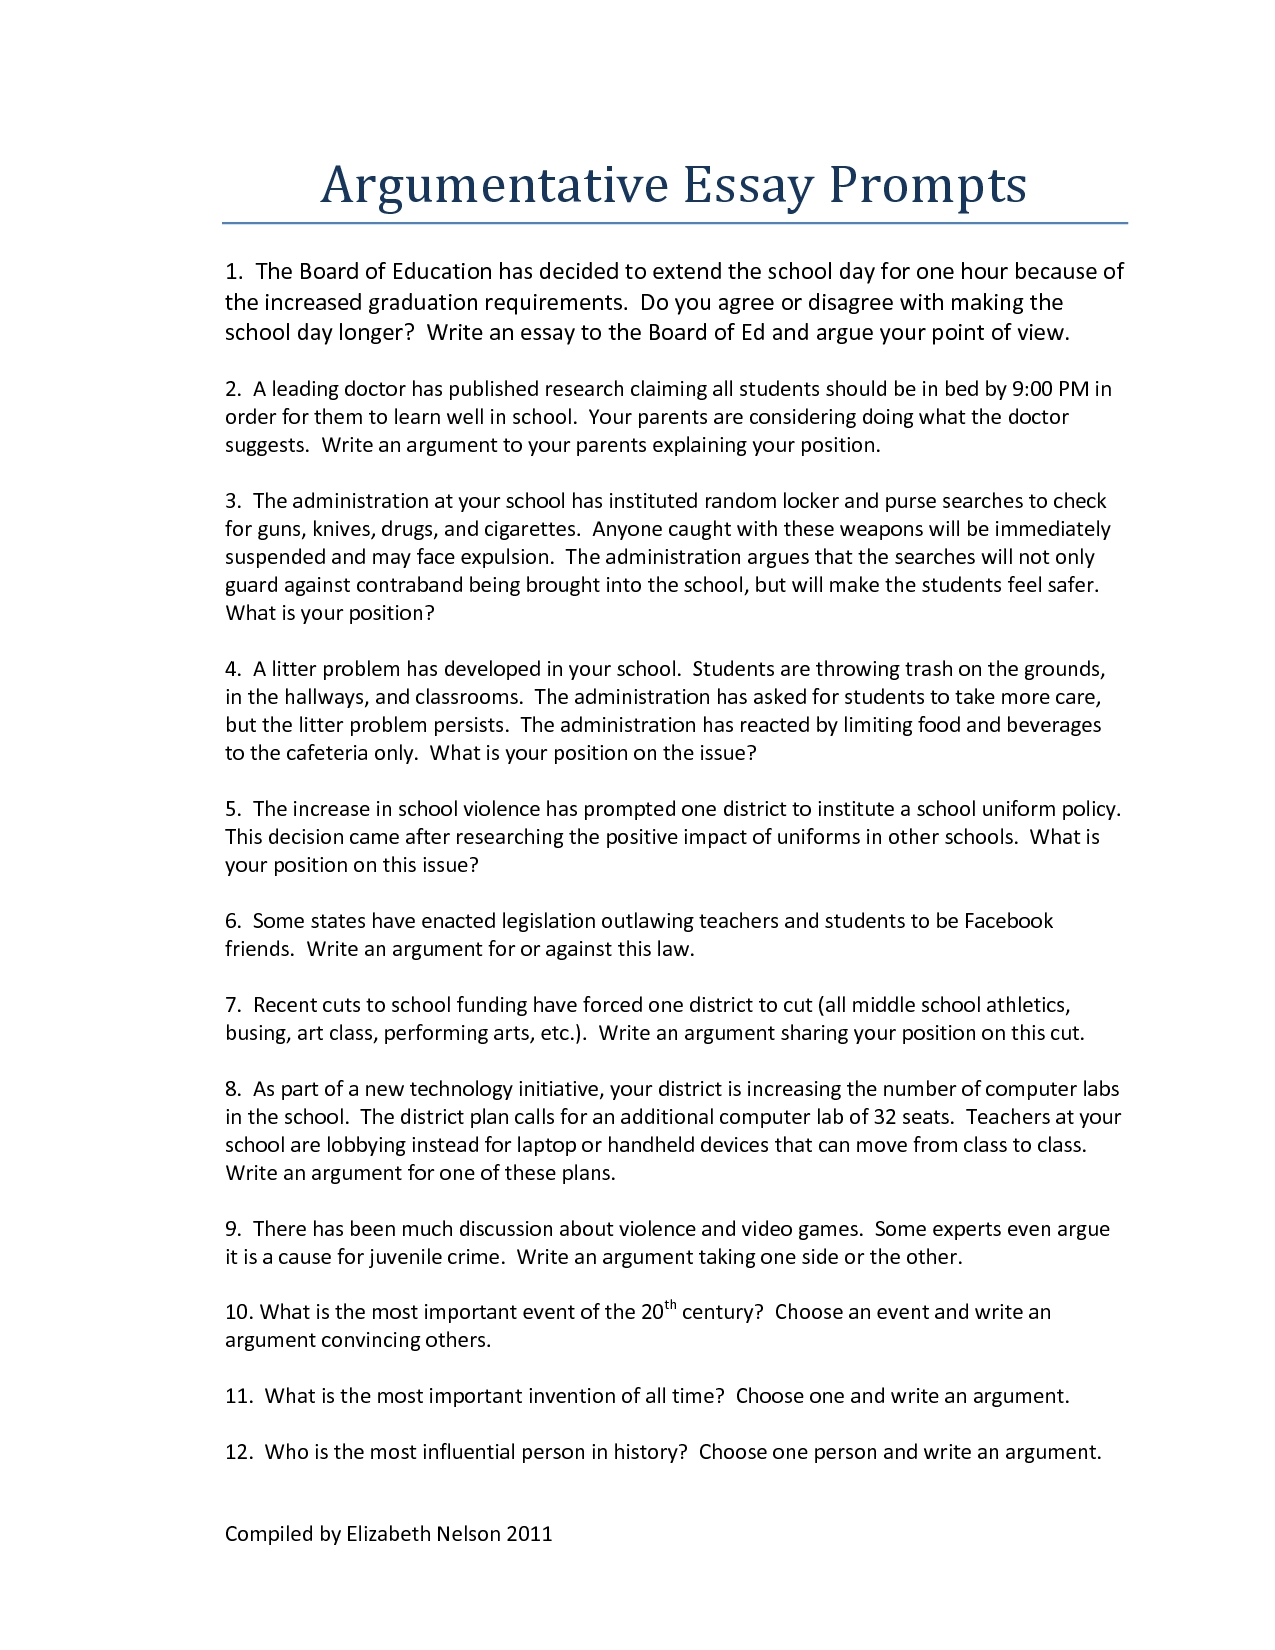 006 Persuasive Essay Topics For Middle School Argumentative Writings And Essays Easy Good High Argument Higher English 6th Grade Kids Pdf College About Imposing Prompts Full